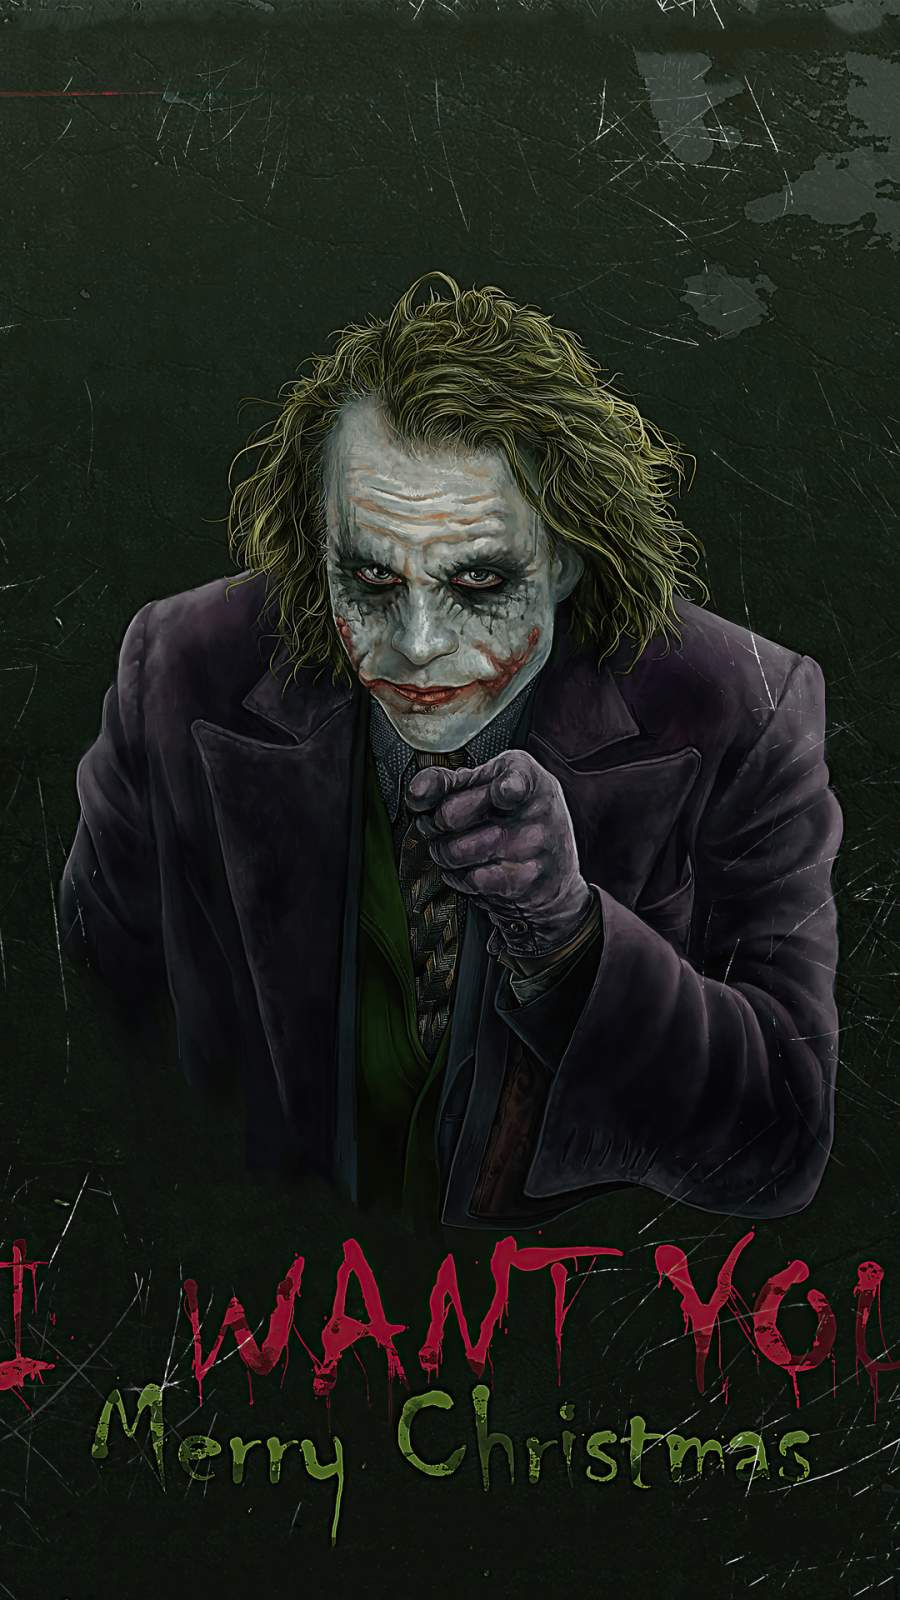 Joker Merry Christmas iPhone Wallpaper